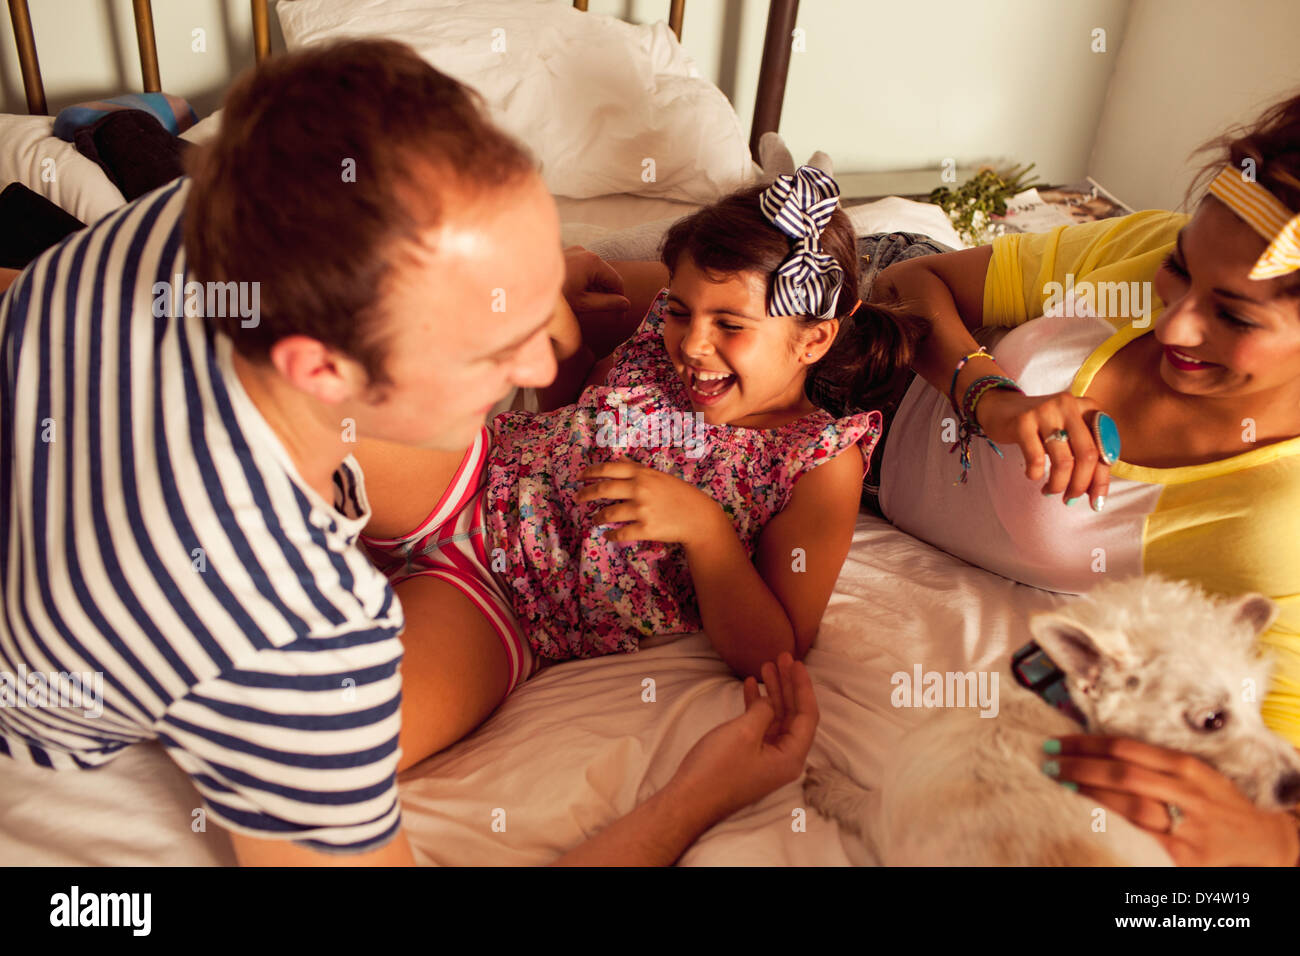 Father and mother on bed tickling daughter - Stock Image